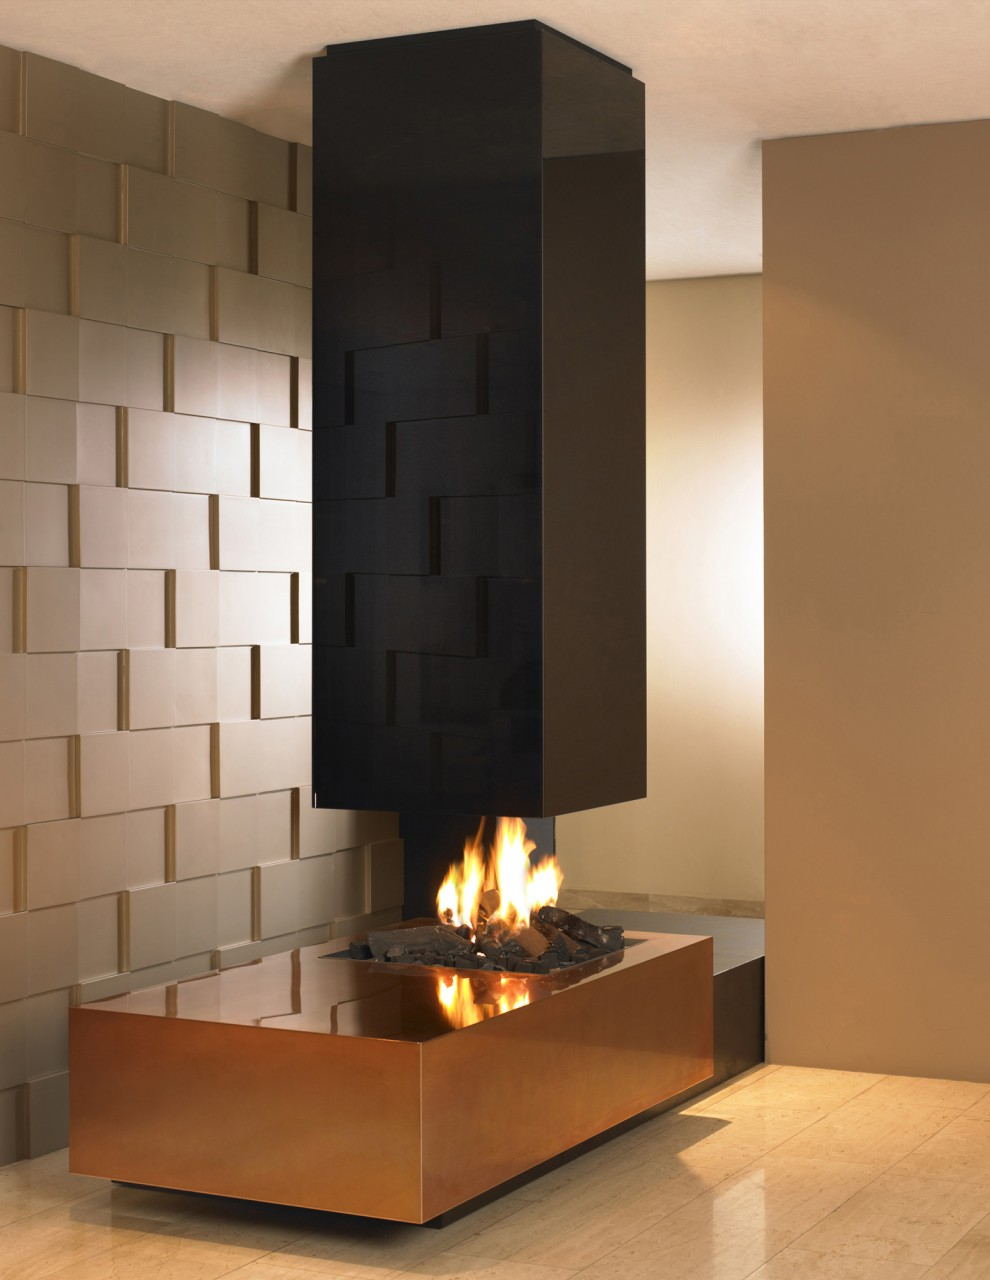 modus fireplaces blog modus fireplaces 840 tunnel modus